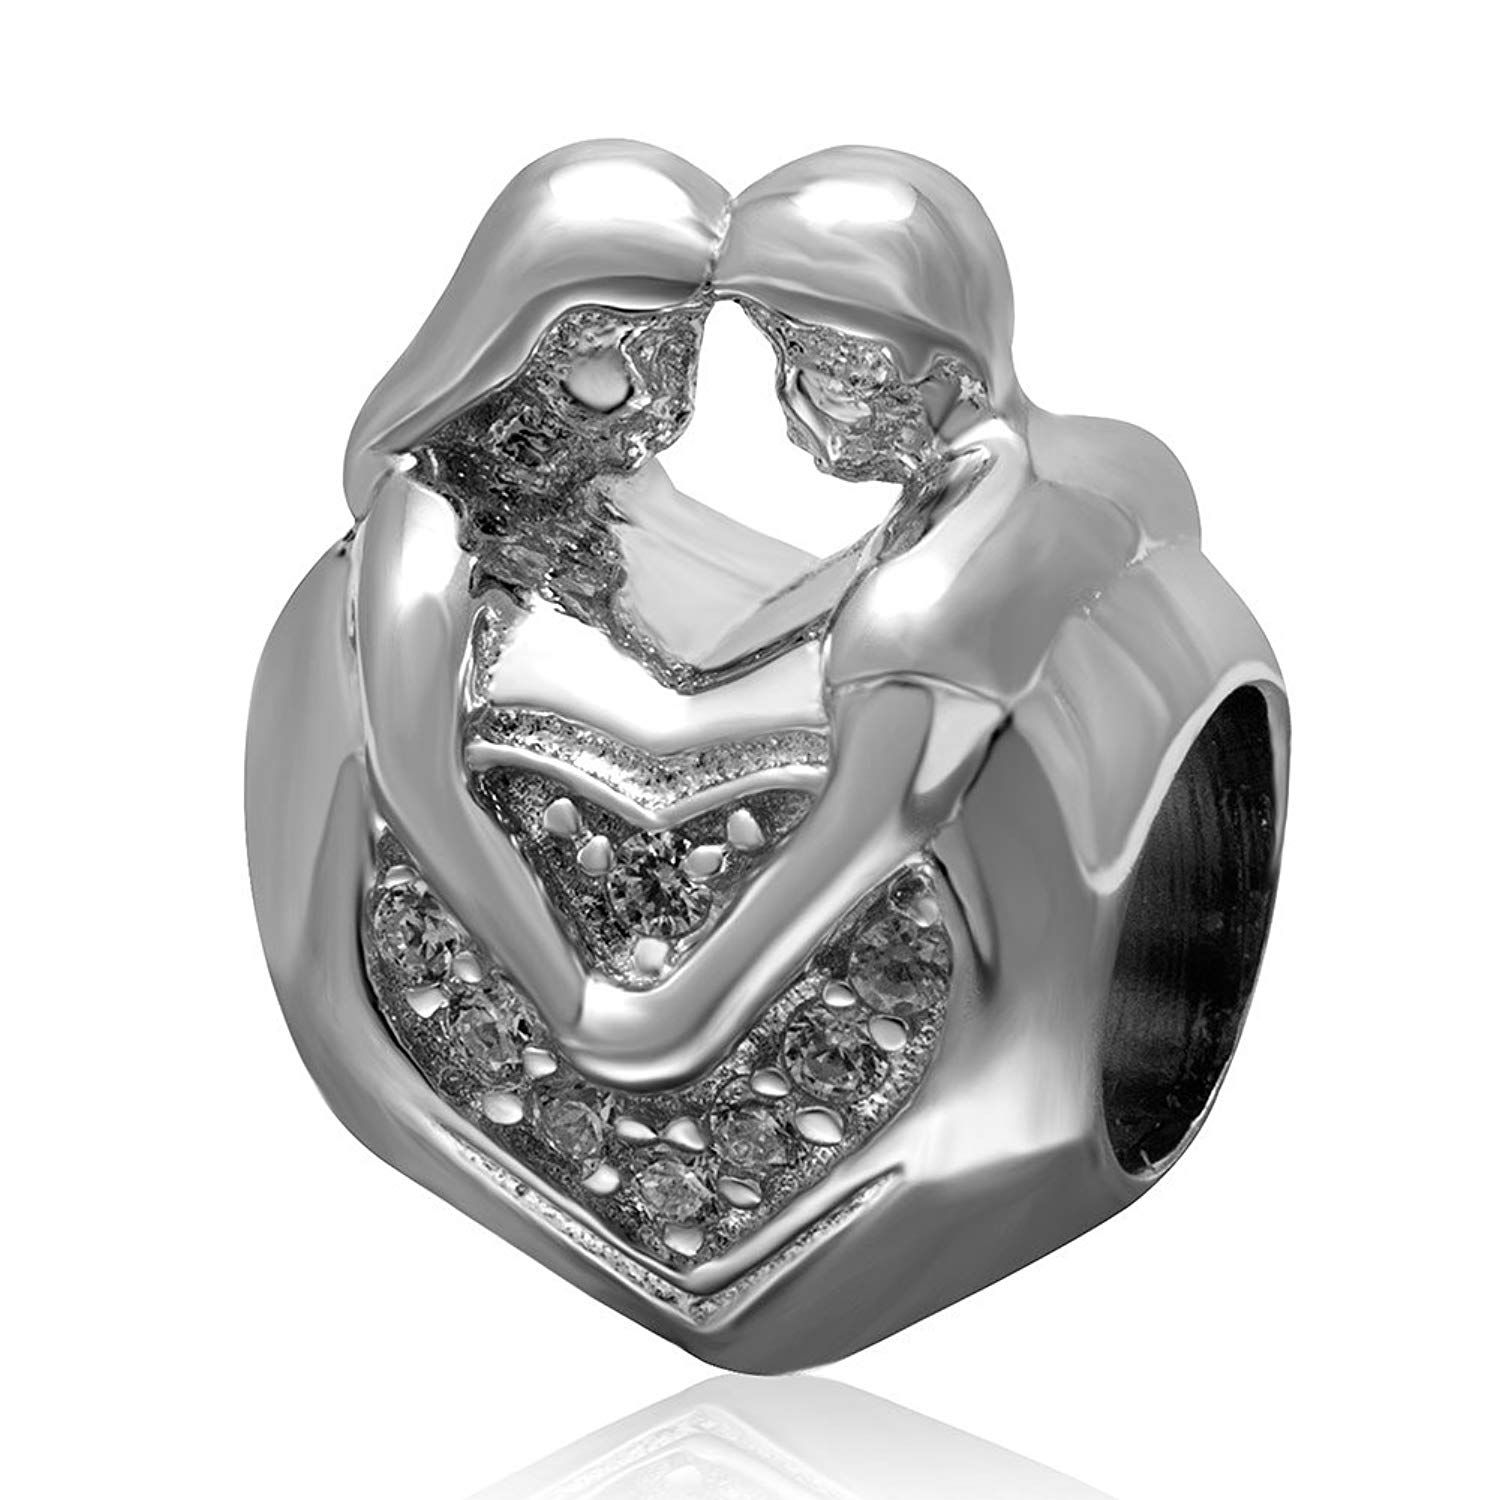 Marriage Charm 925 Sterling Silver Beads Love Charm //Couple Charm Fits Diy Charm Bracelets